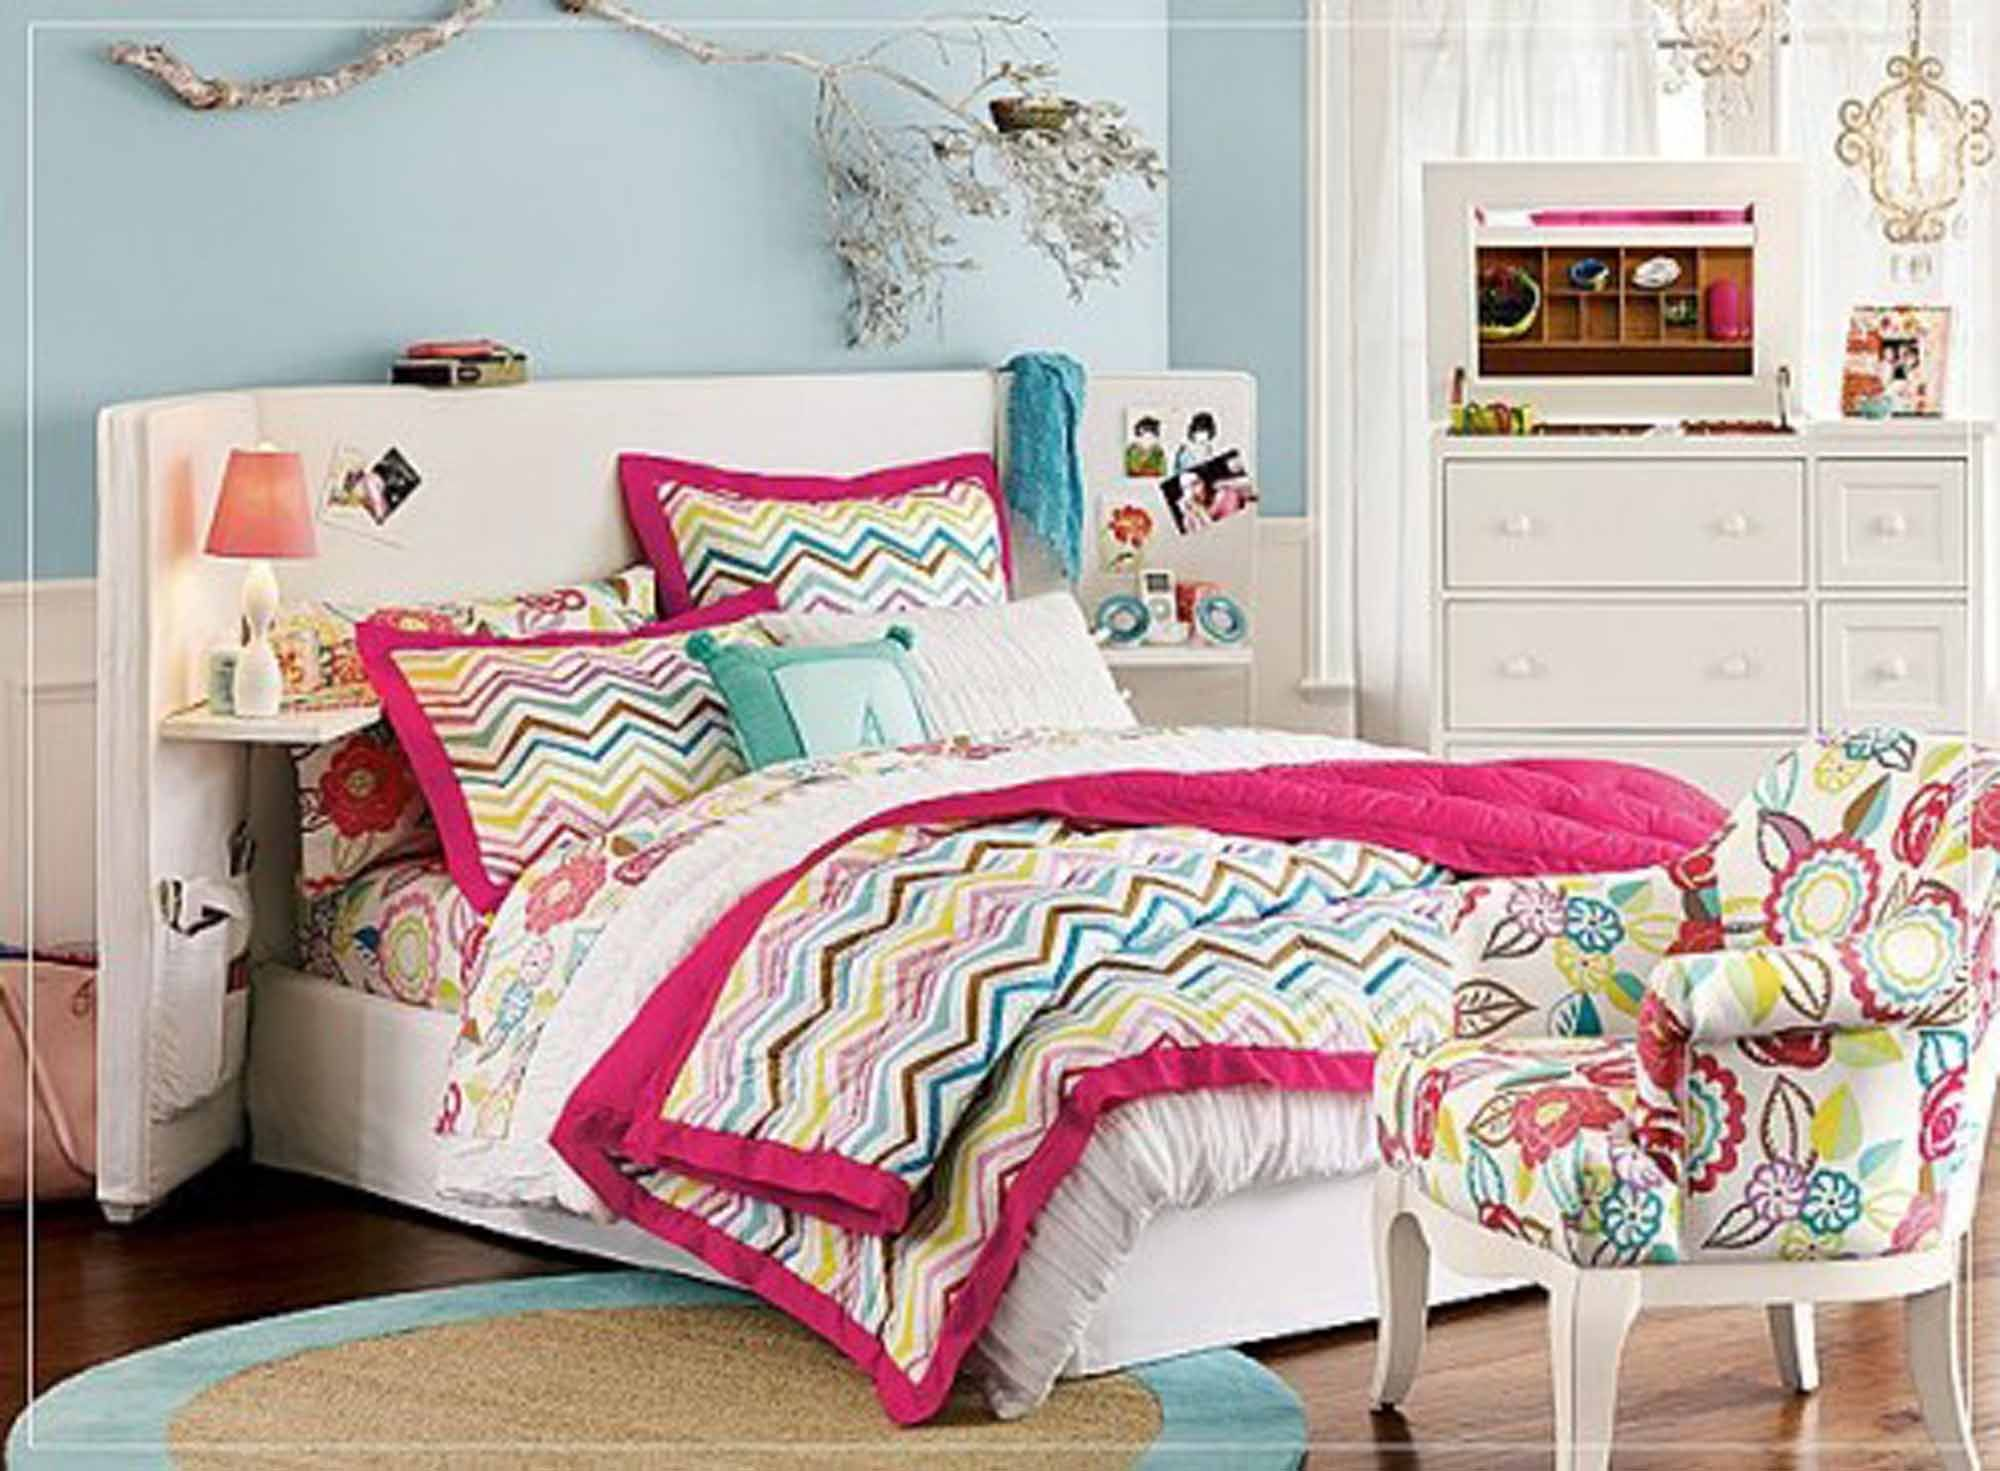 Teenage Girl Bedroom Ideas For Small Rooms teenage bedrooms - google search | dream home | pinterest